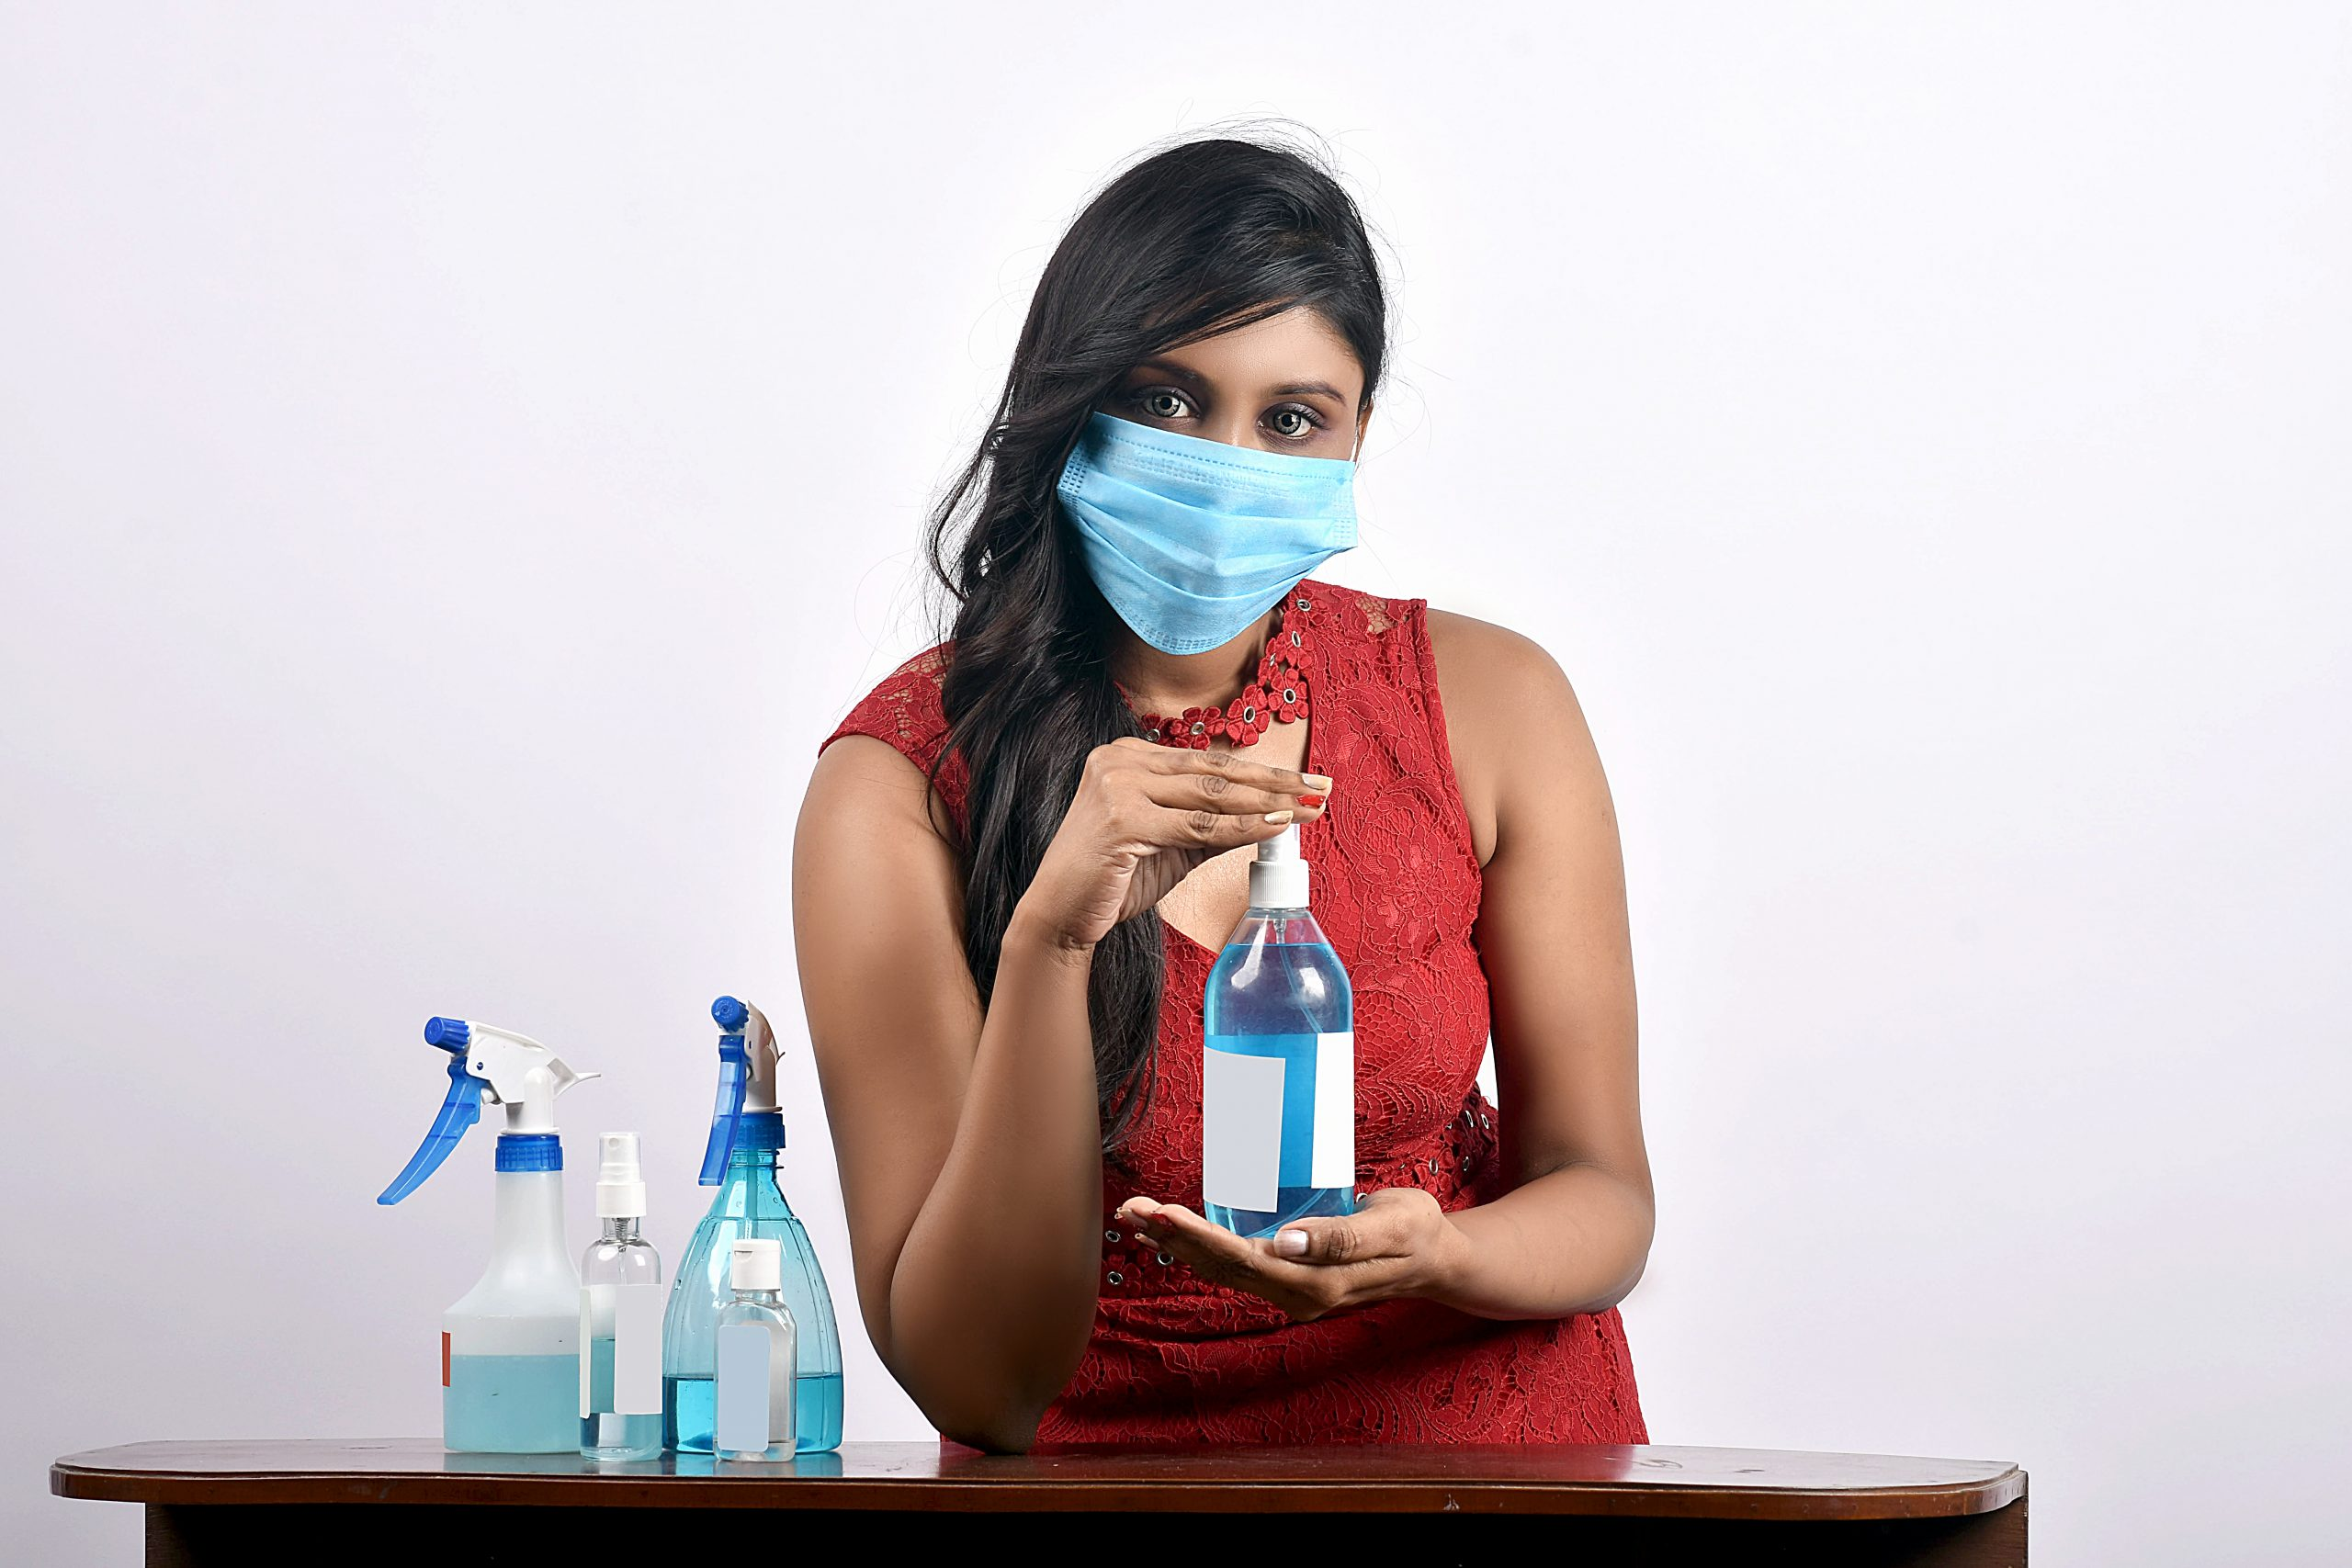 Model with mask and sanitizer